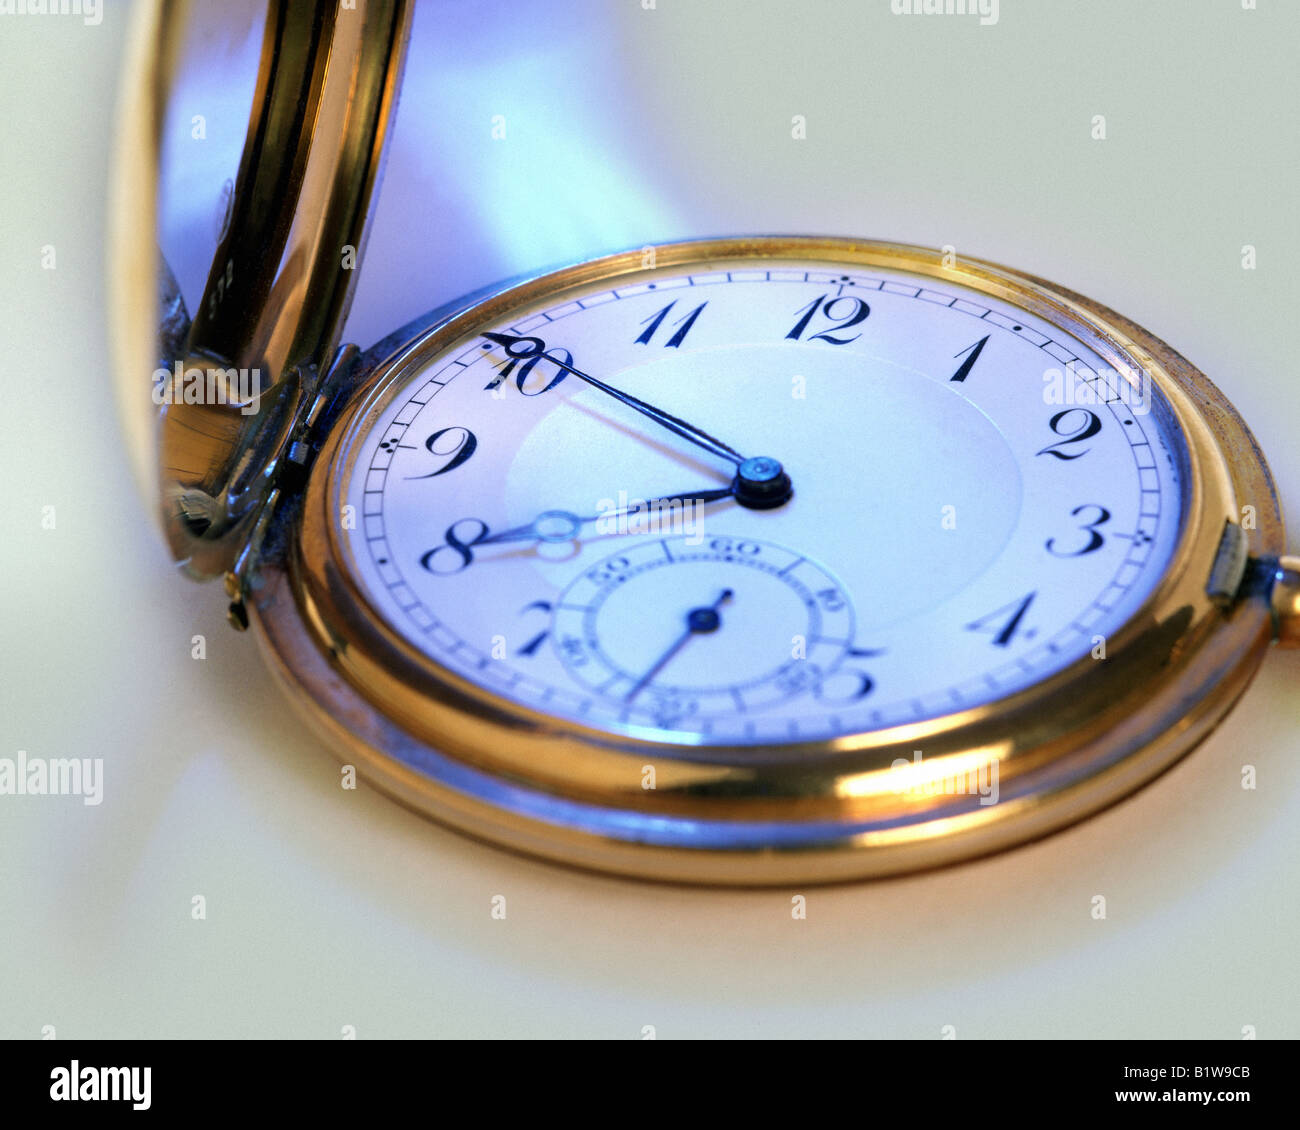 Goldene Uhr Stock Photos Goldene Uhr Stock Images Alamy Timepiece Stockfotos And Timepiece Bilder Alamy